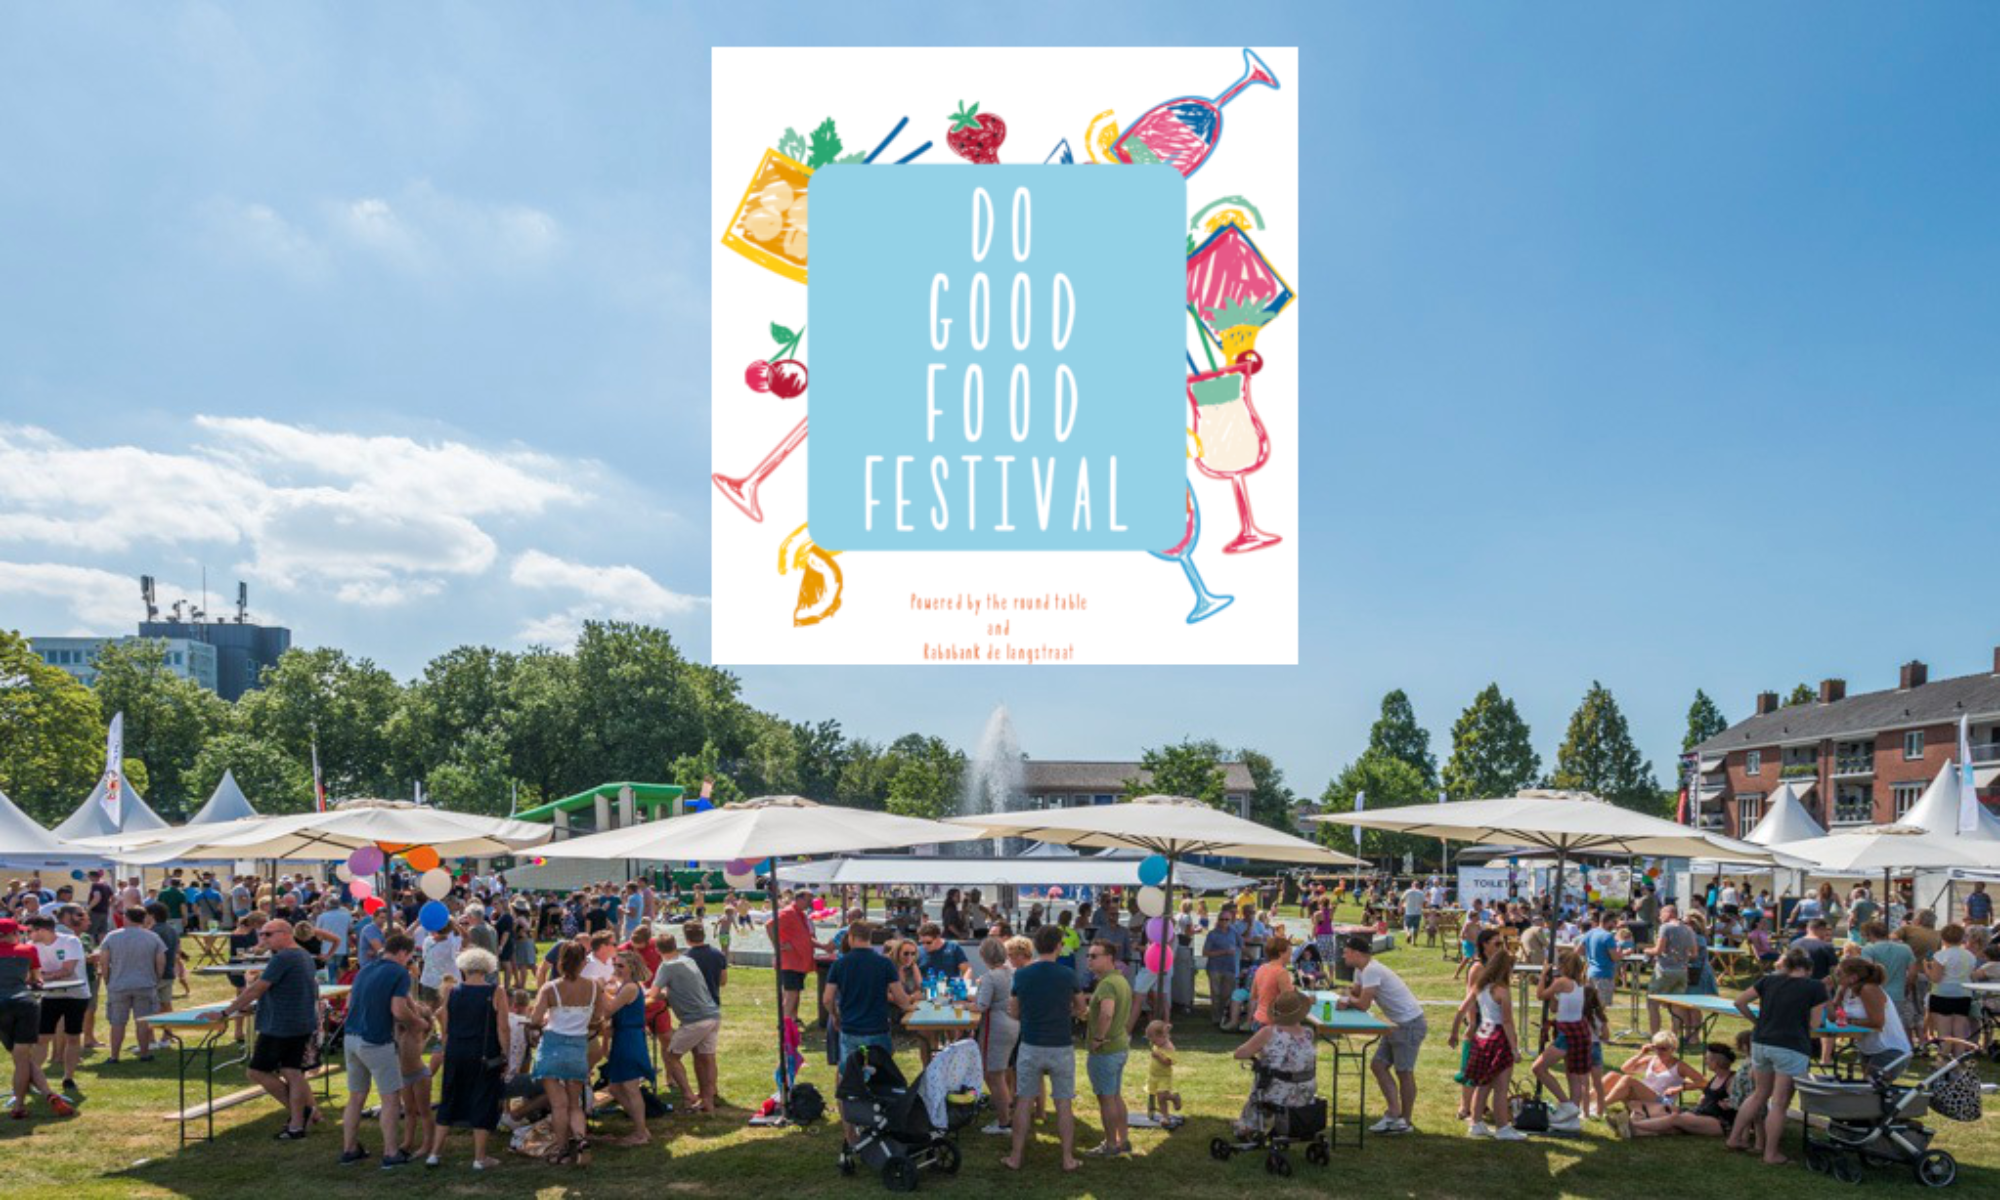 Do Good Food Festival editie 2019